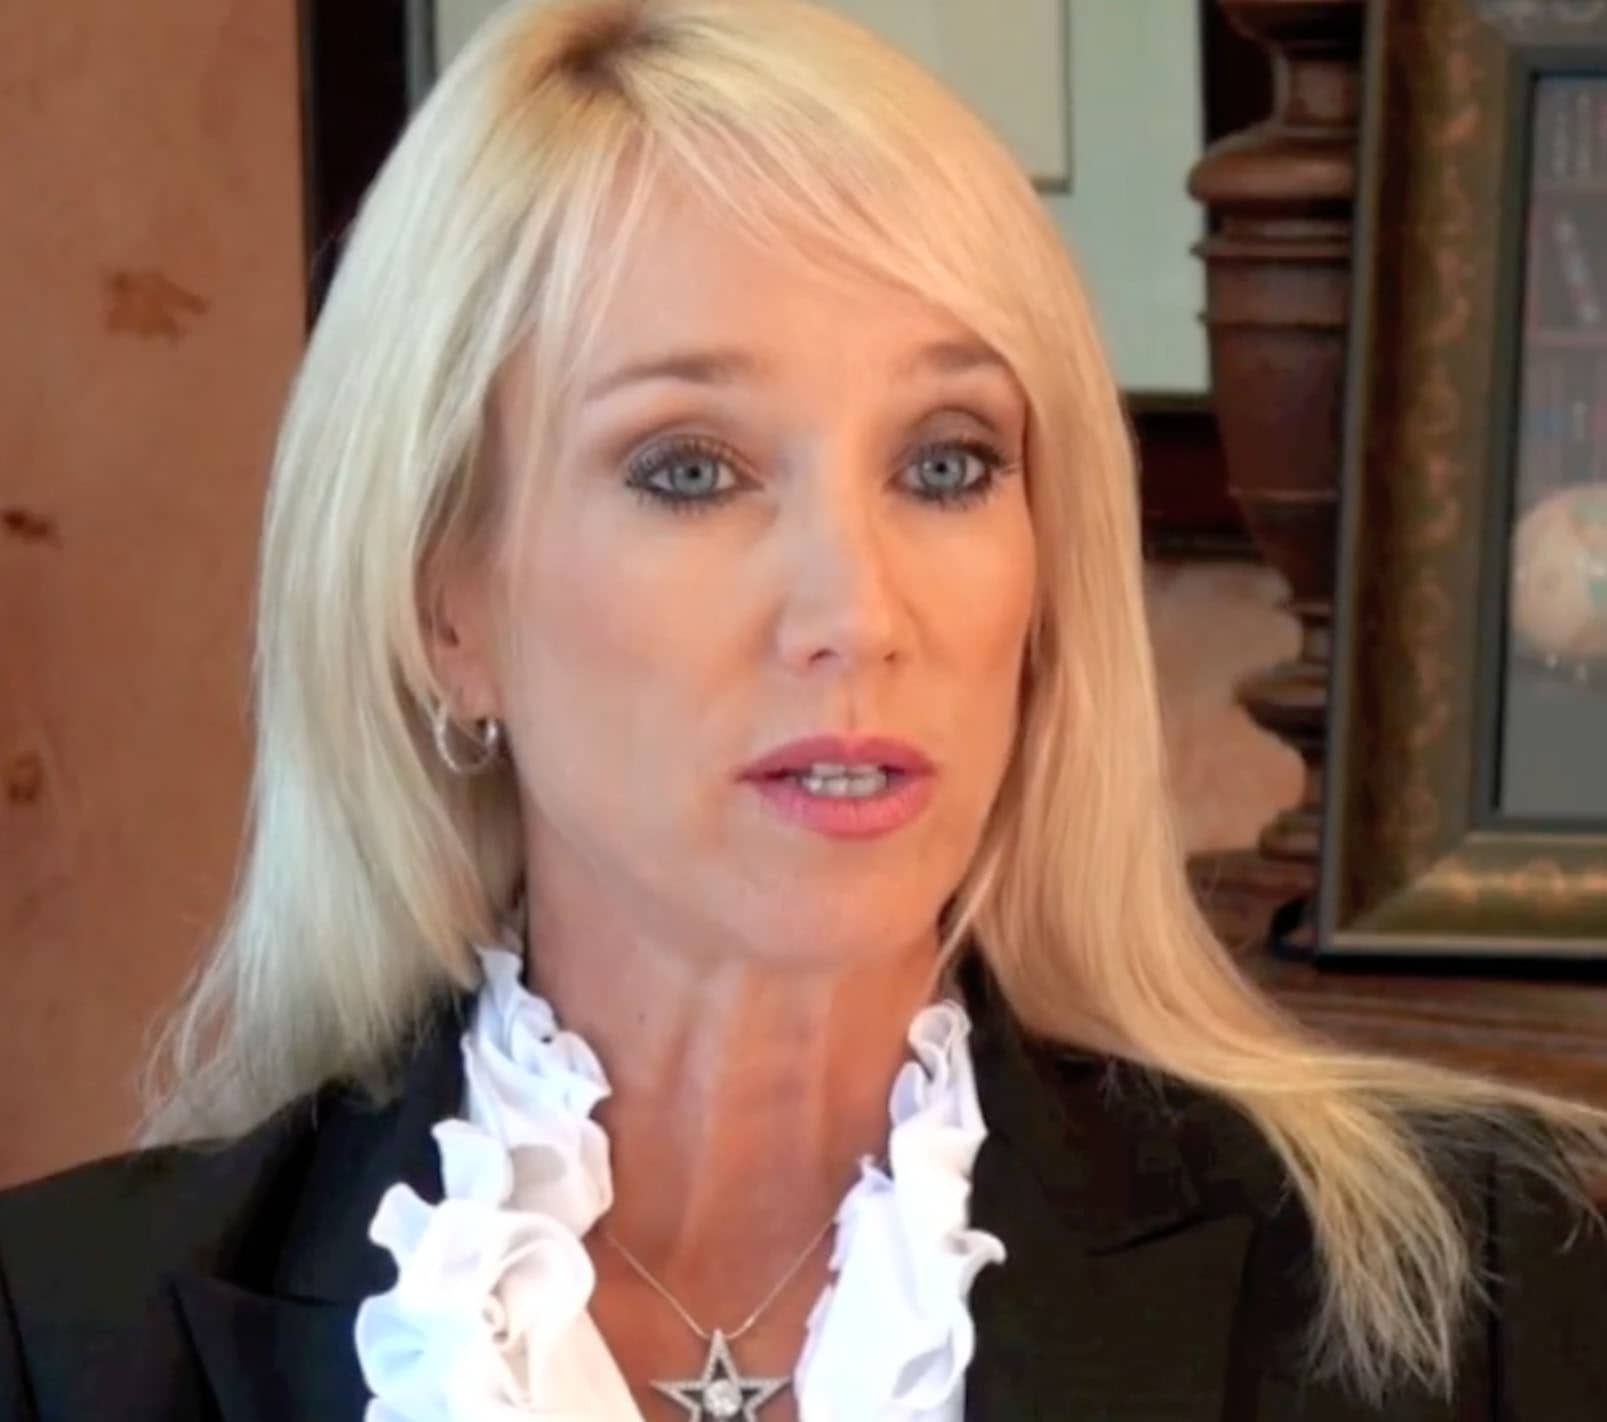 Terry Bradshaw's ex-wife Charla Bradshaw featured on Koonsfuller, P.C. Family Law's YouTube channel in 2011